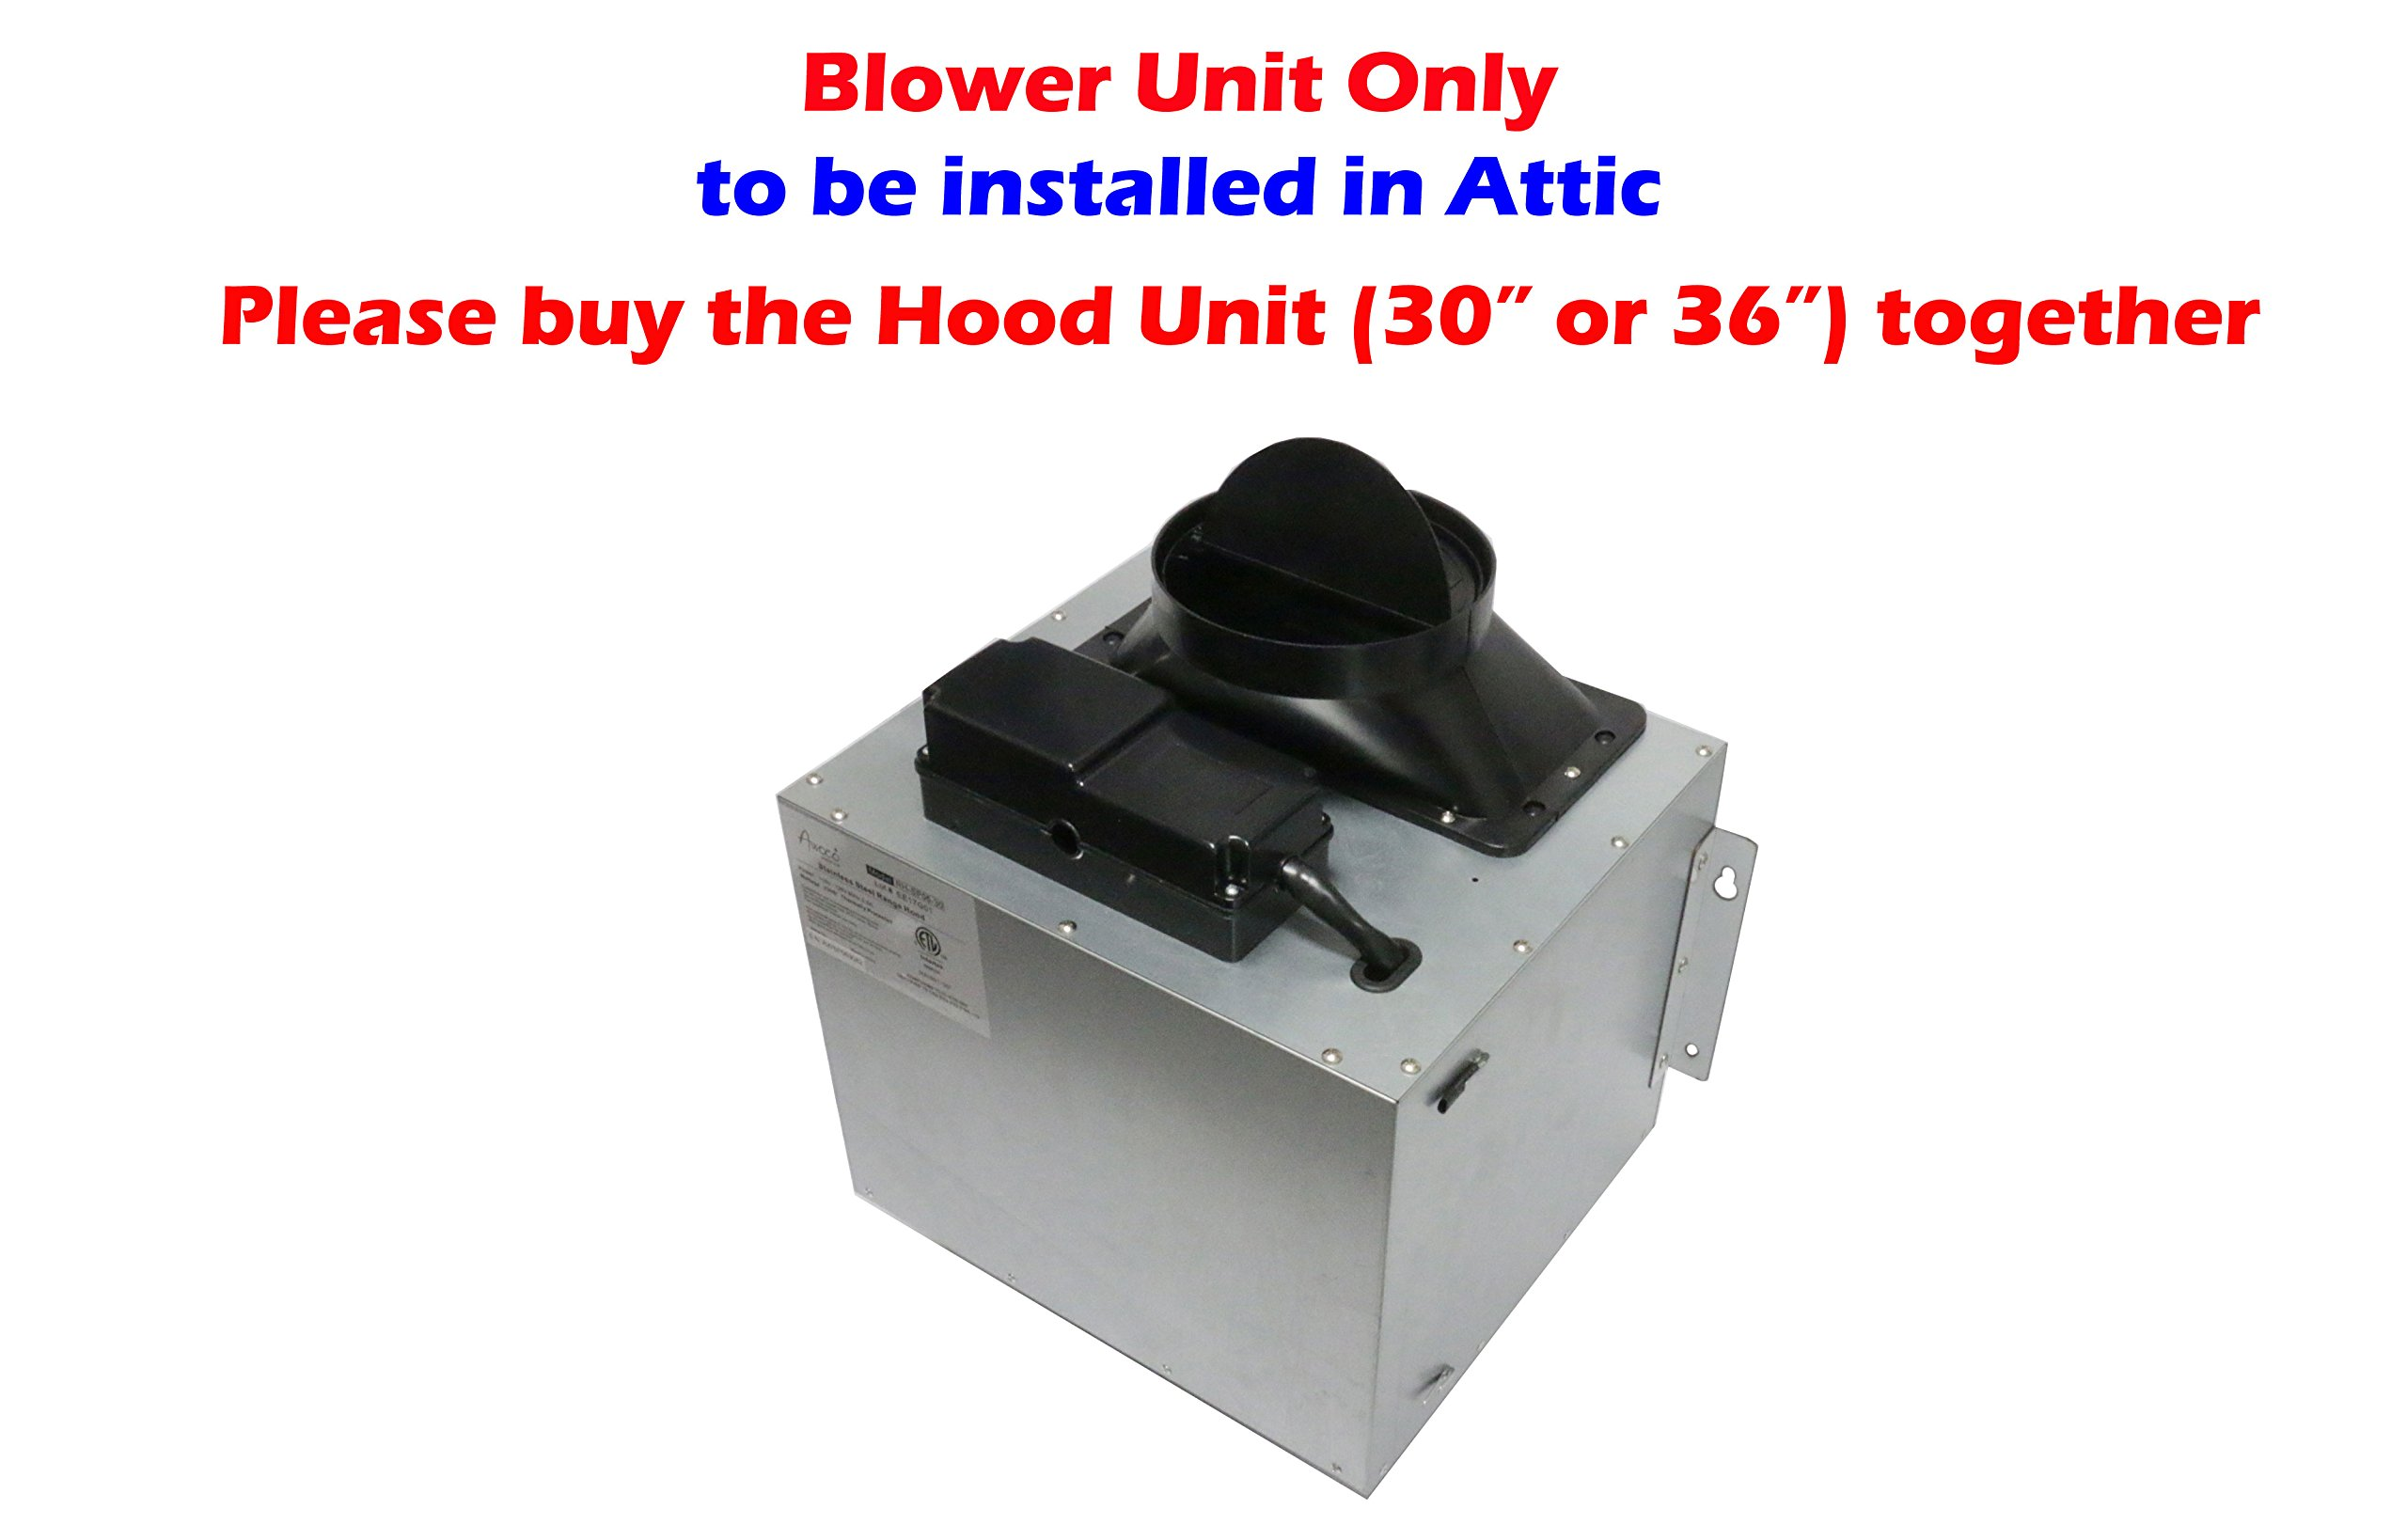 Awoco Split Super Quiet Range Hood Blower Unit Installed in Attic Work with 30'' or 36'' Hood Unit, 4 Speeds 900CFM, 6'' Round Vent In and Out (Blower Unit Only) by Awoco (Image #2)